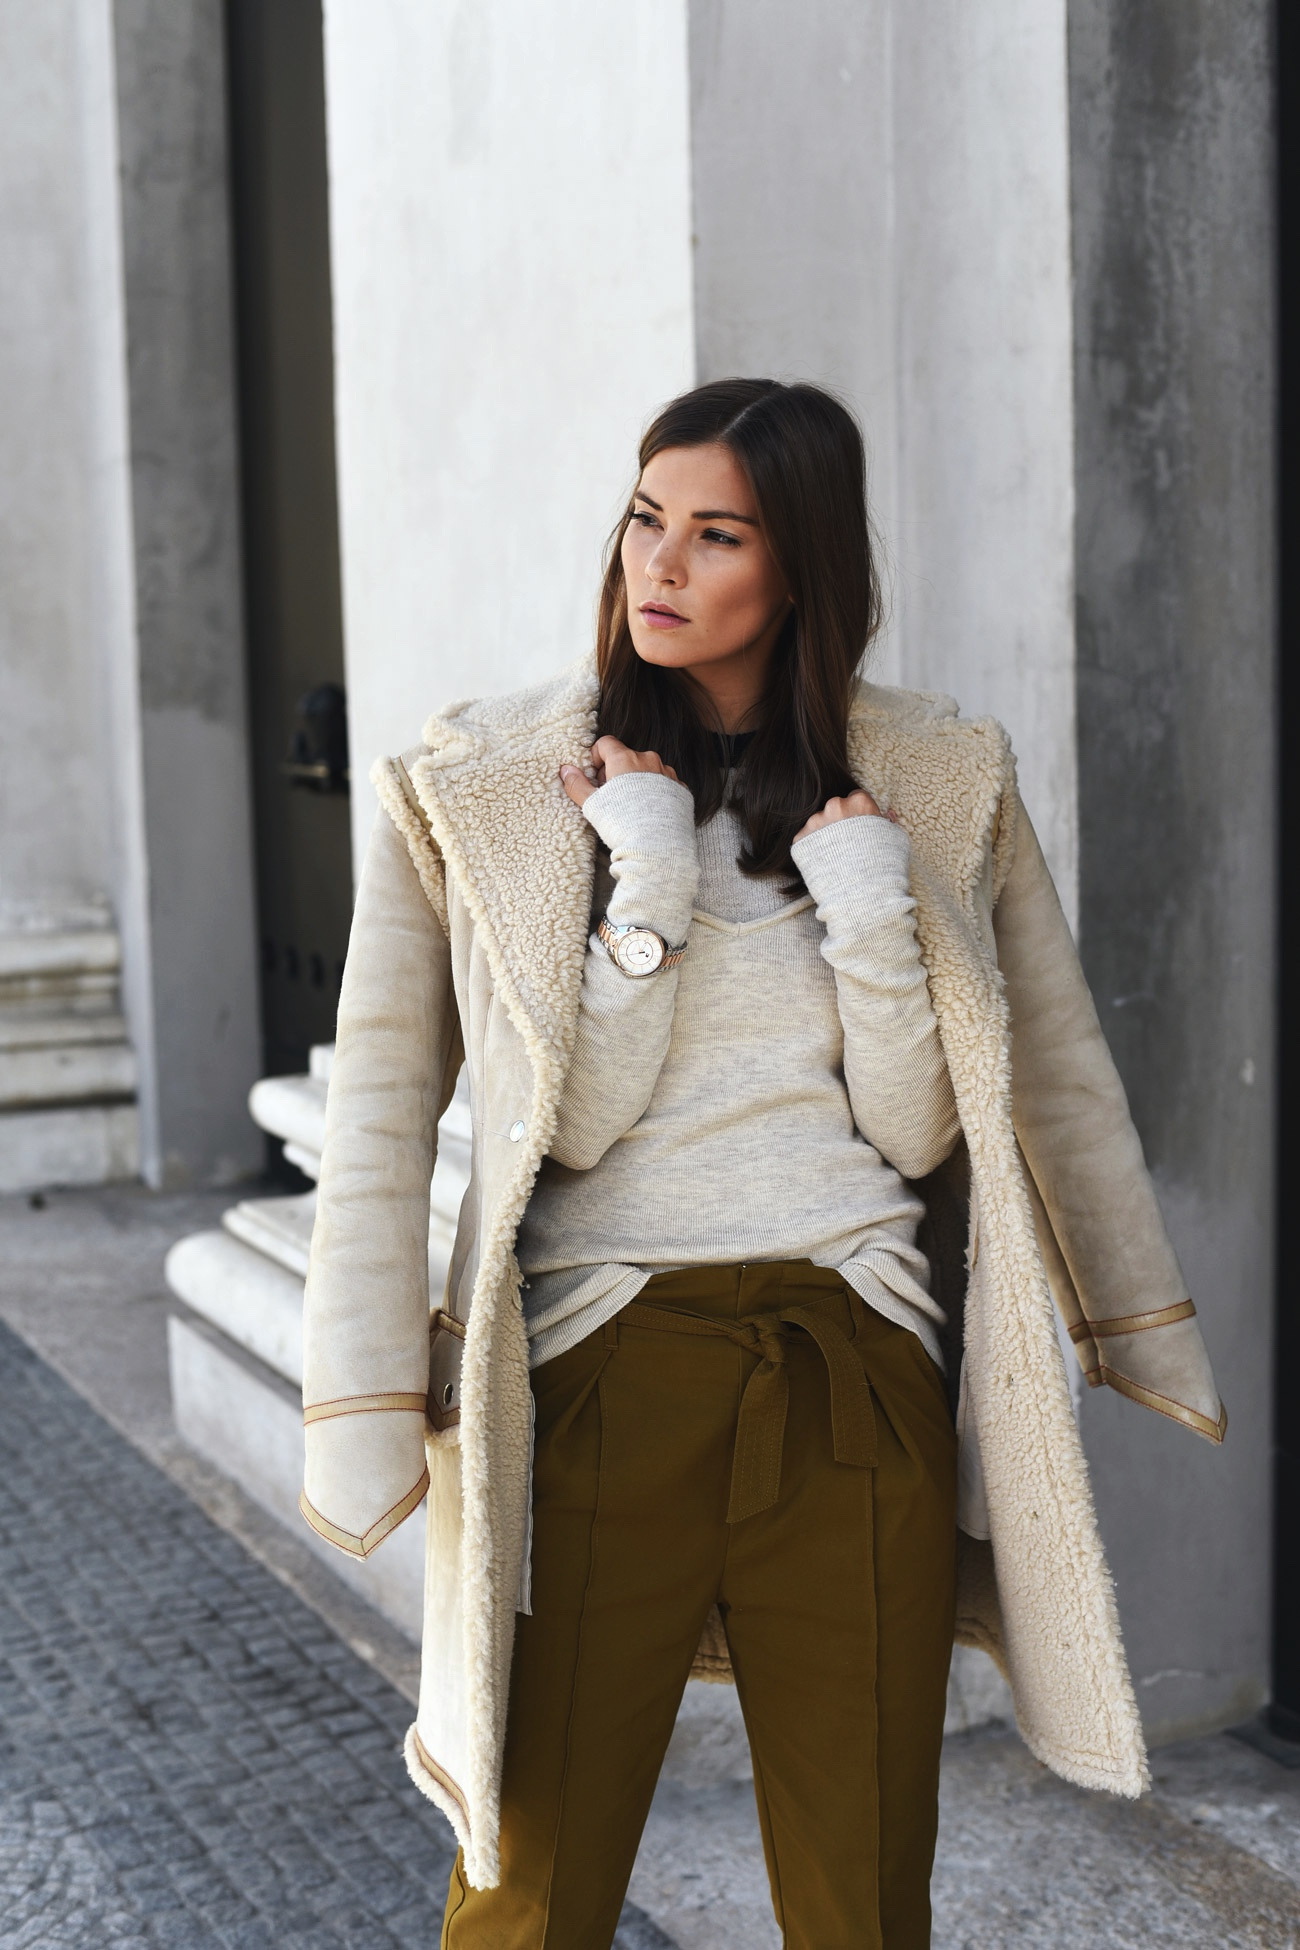 shearling-coat-hm-studio-collection-autumn-winter-2016-blogger-street-style-look-fashiioncarpet